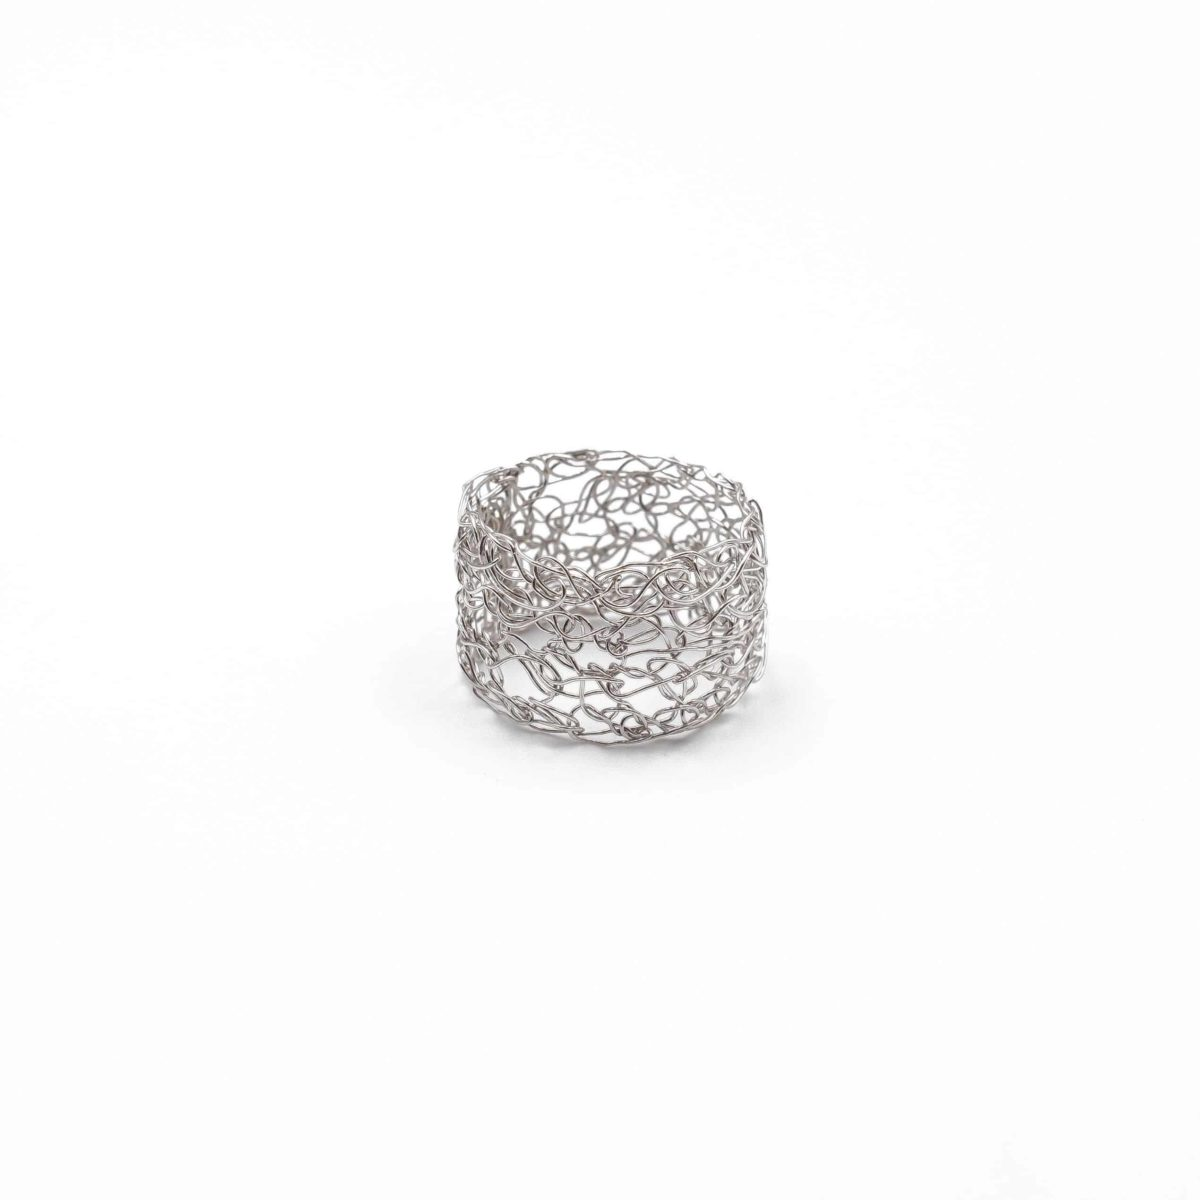 front view of adjustable silver band ring plated in platinum